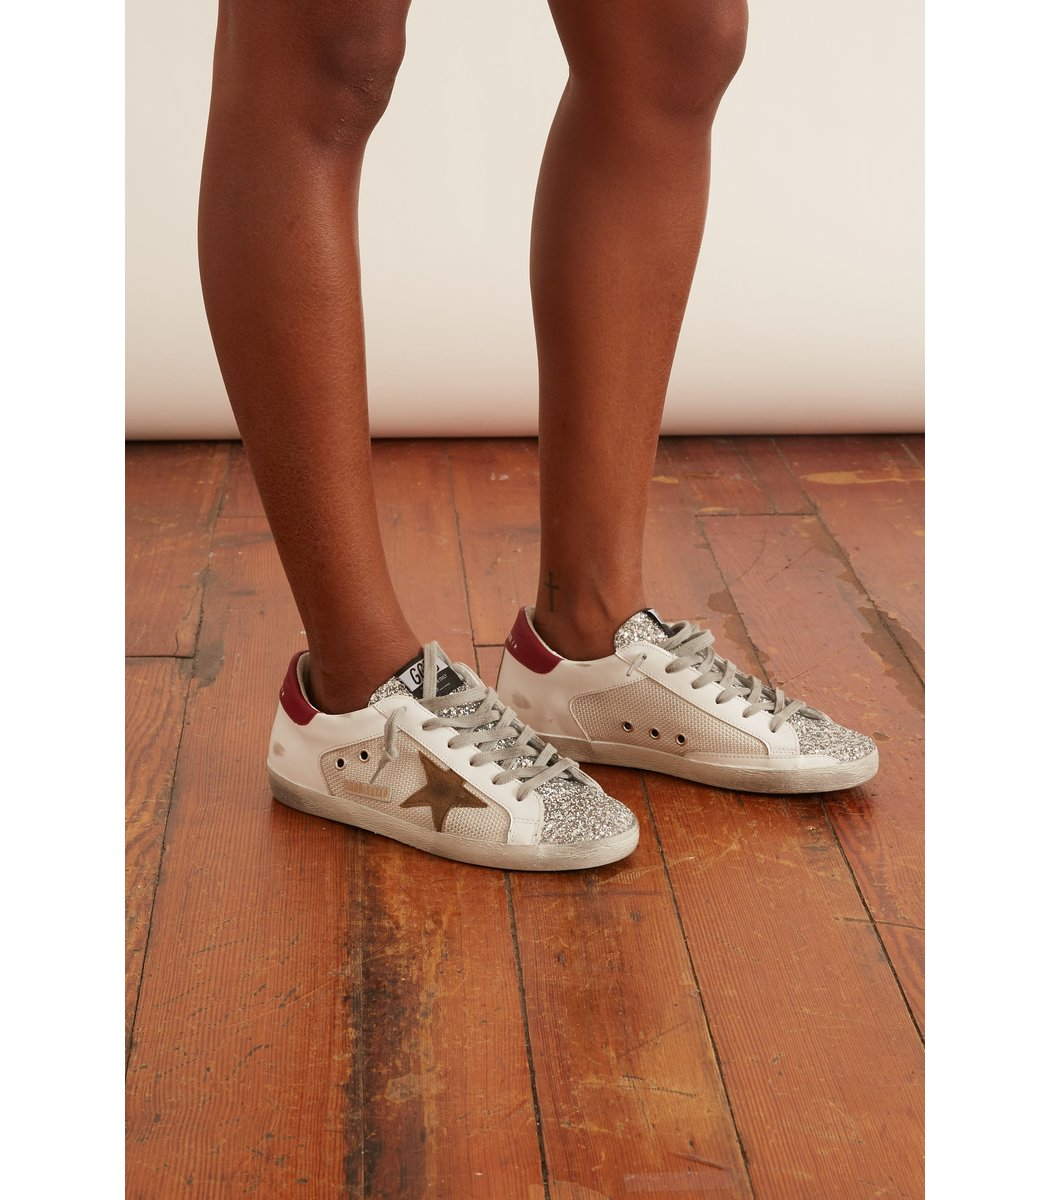 GOLDEN GOOSE Glitters Superstar Sneaker in Silver/White/Tobacco/Red